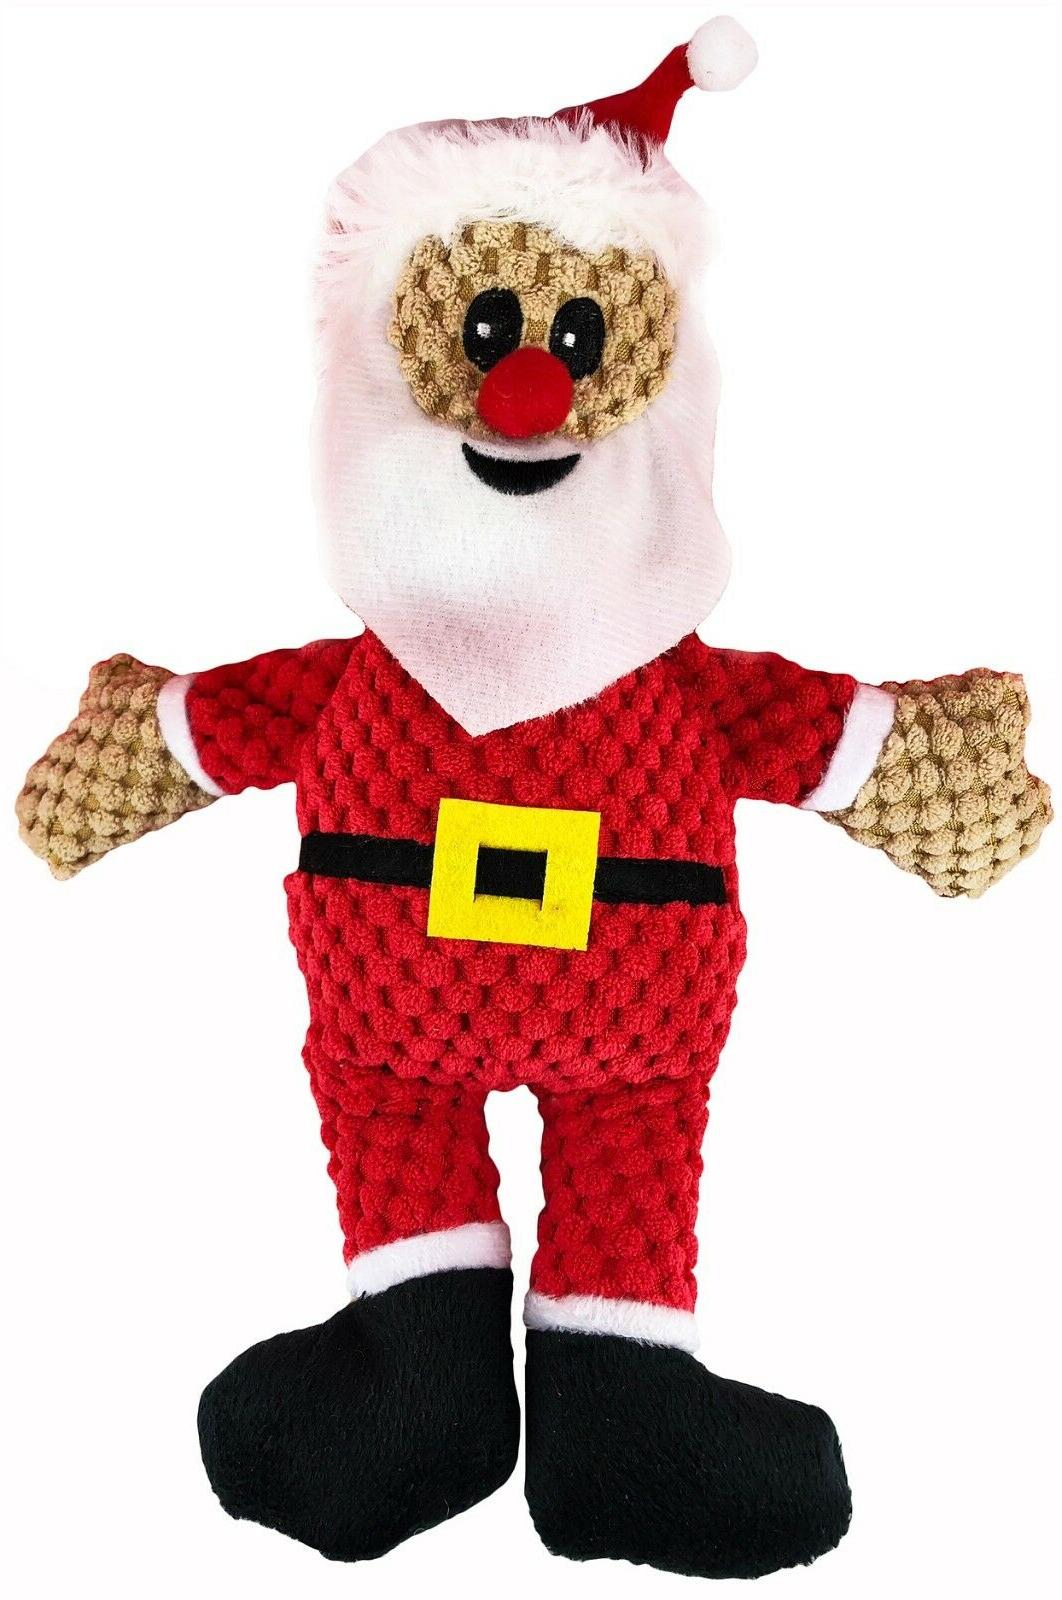 3-Pack Holiday Squeaker Plush Play Squeaky